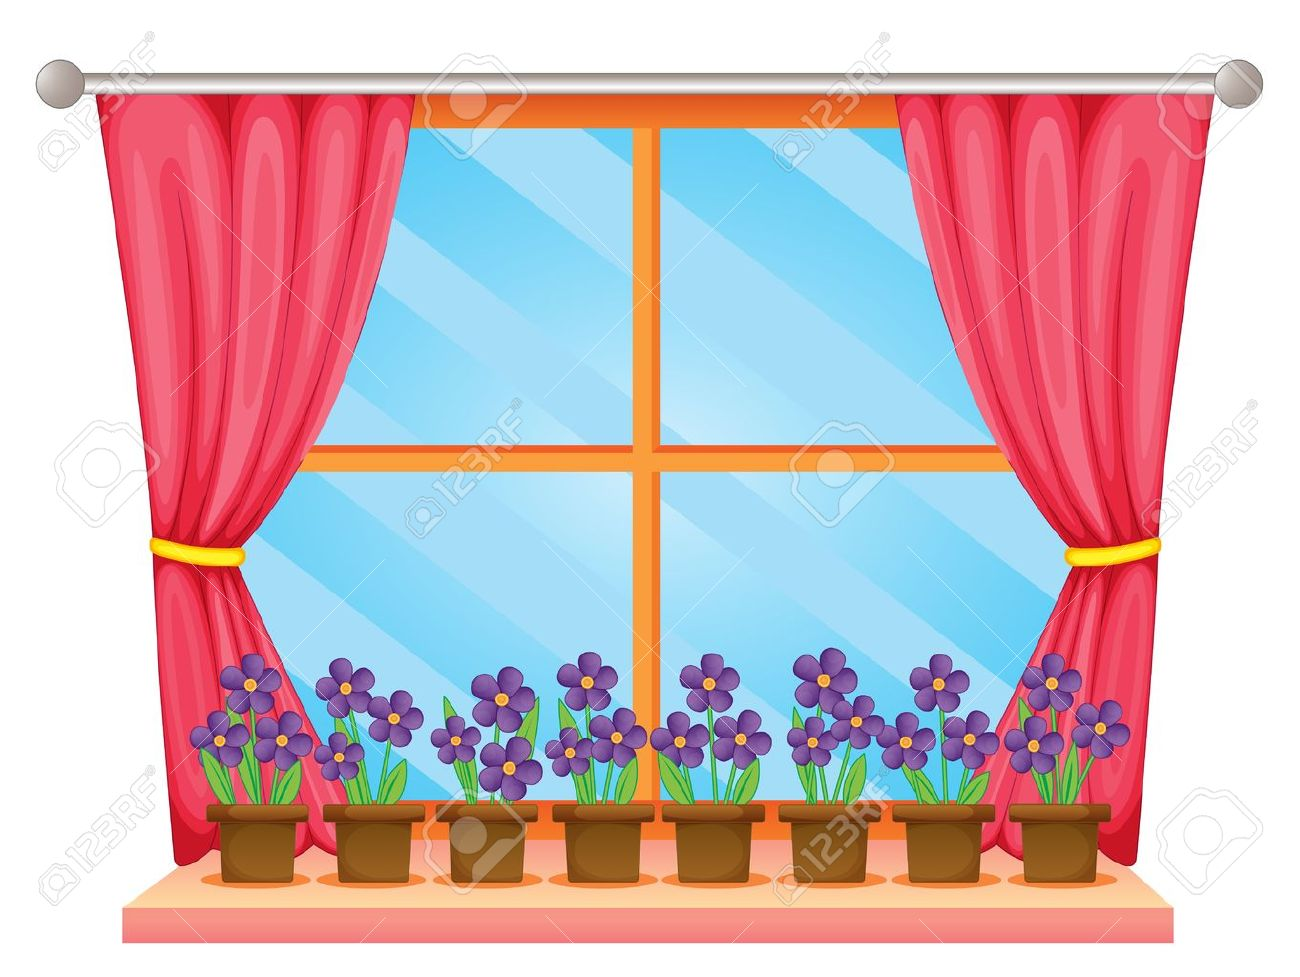 Illustration Of A Window Sill With Flowers Royalty Free Cliparts ... for Window With Curtains Illustration  75tgx